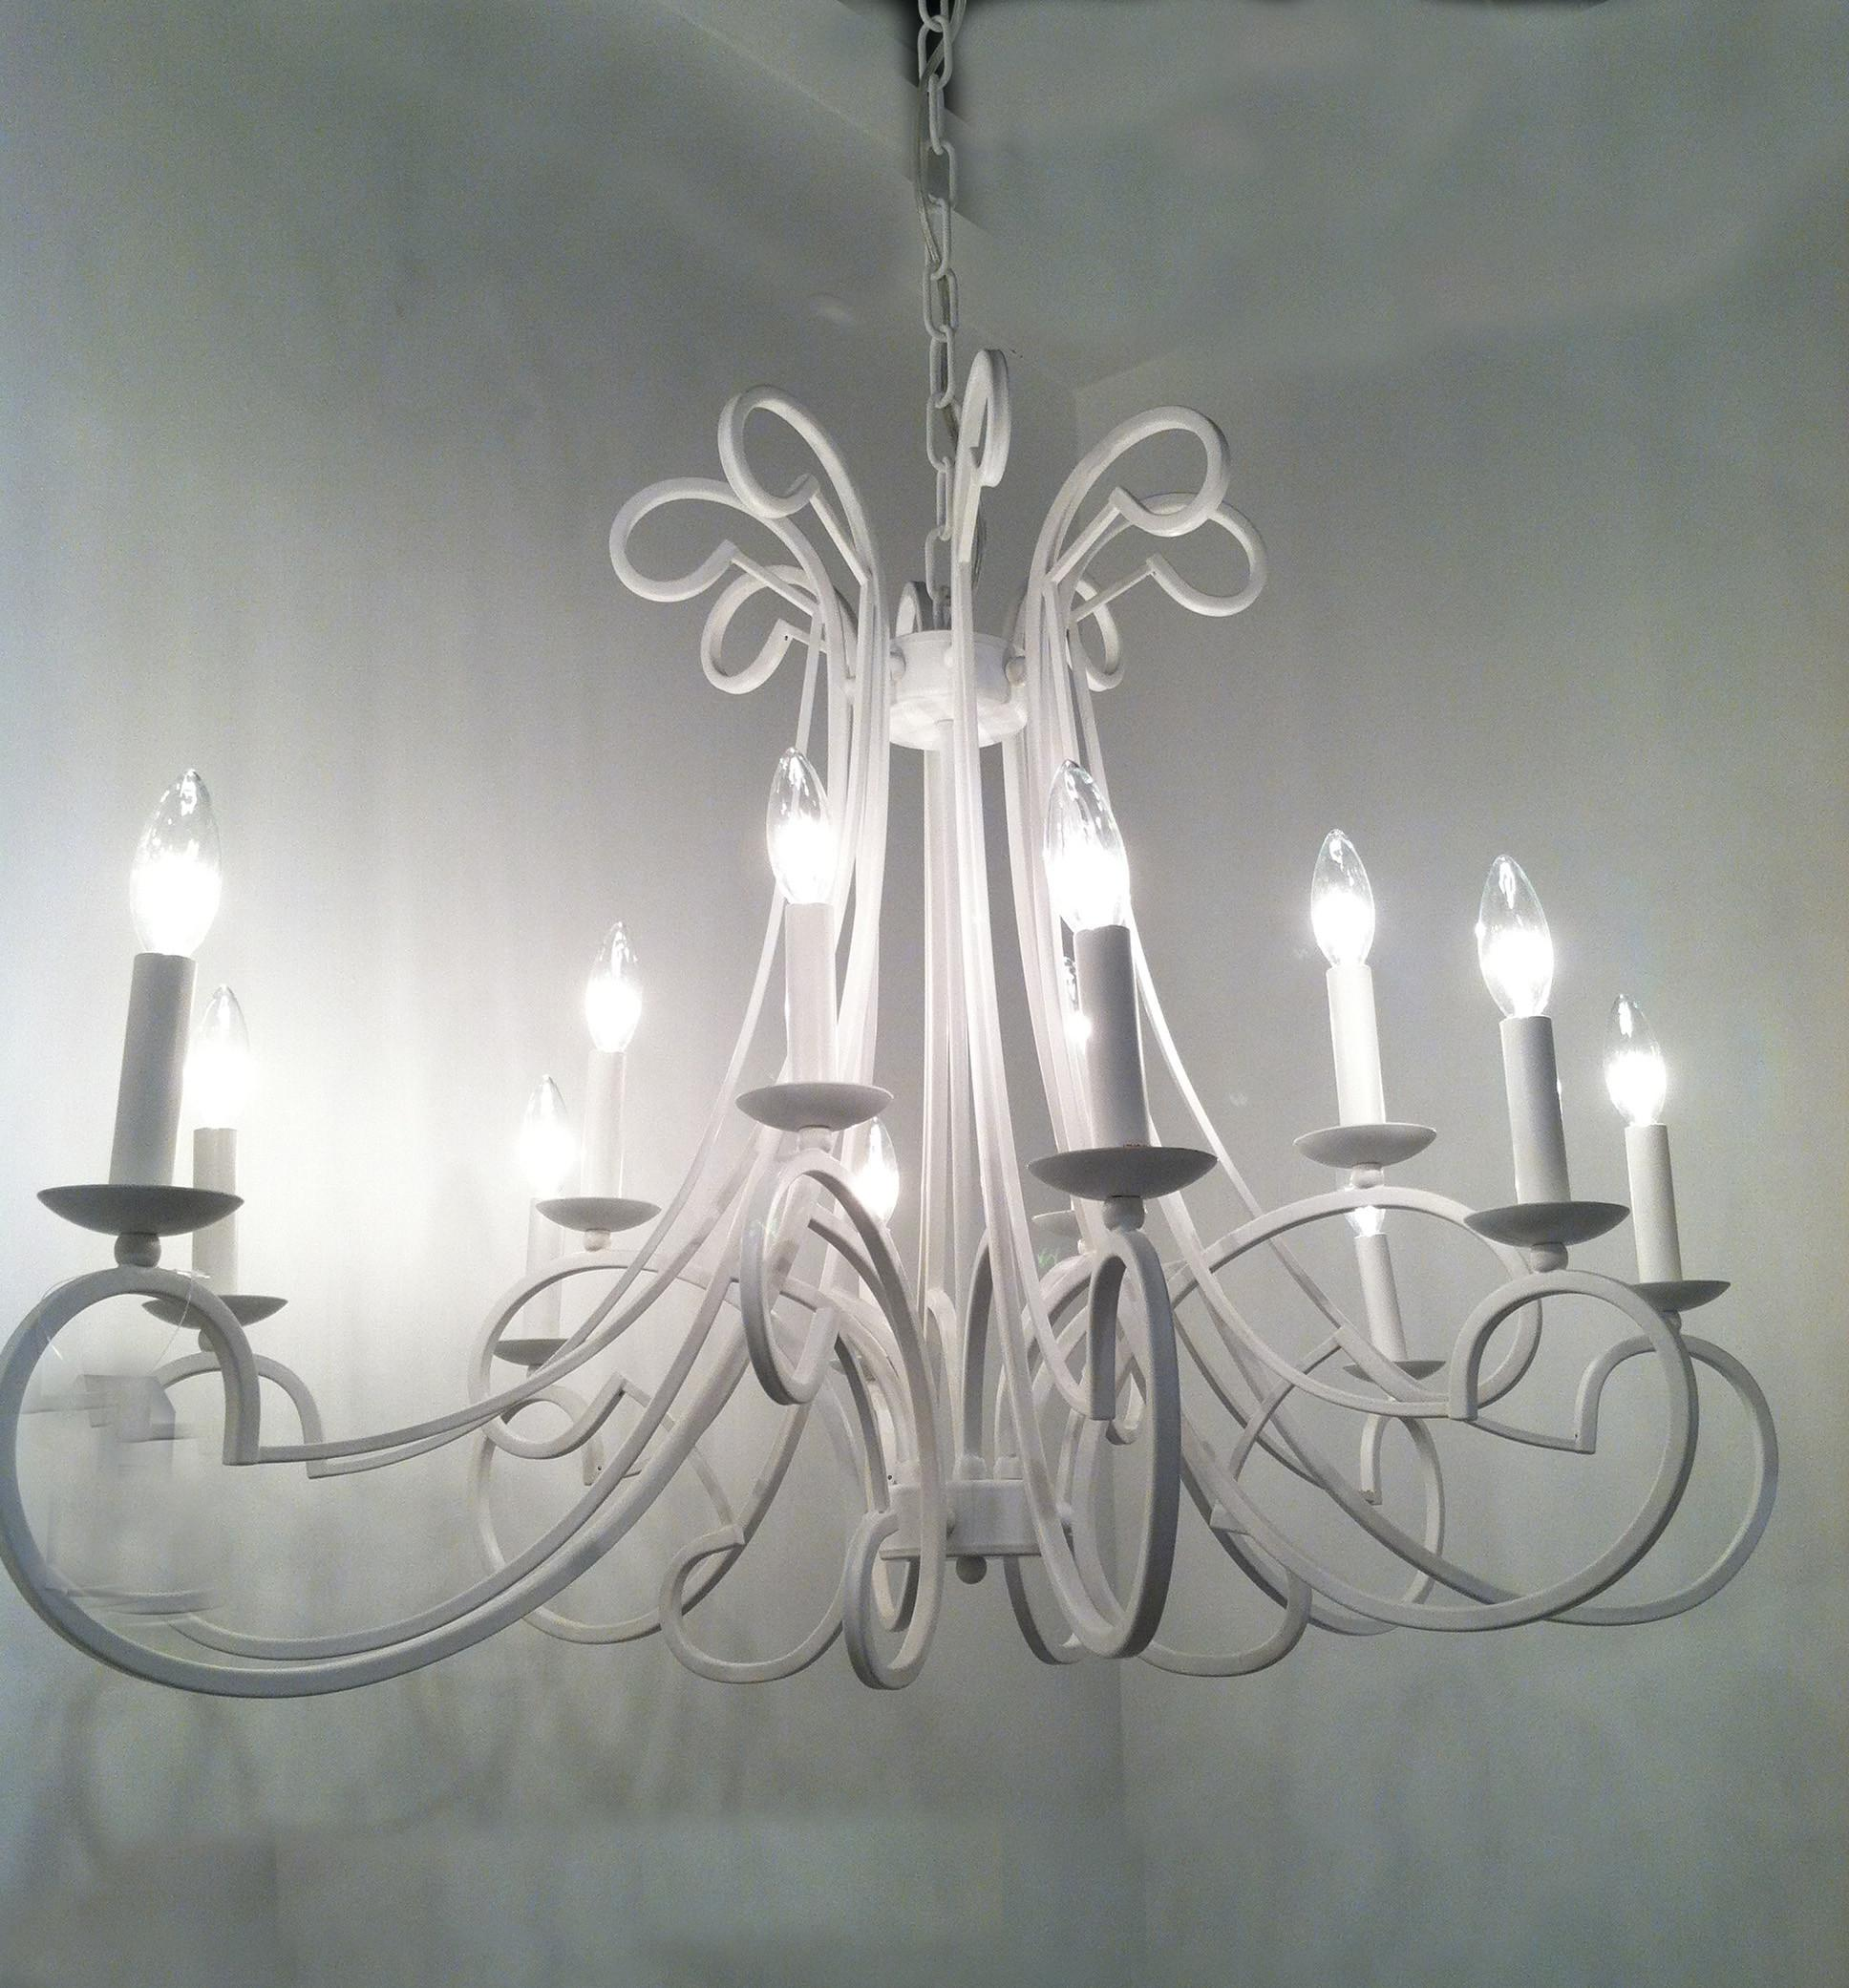 Vintage Style White Finished Iron Cool Chandeliers